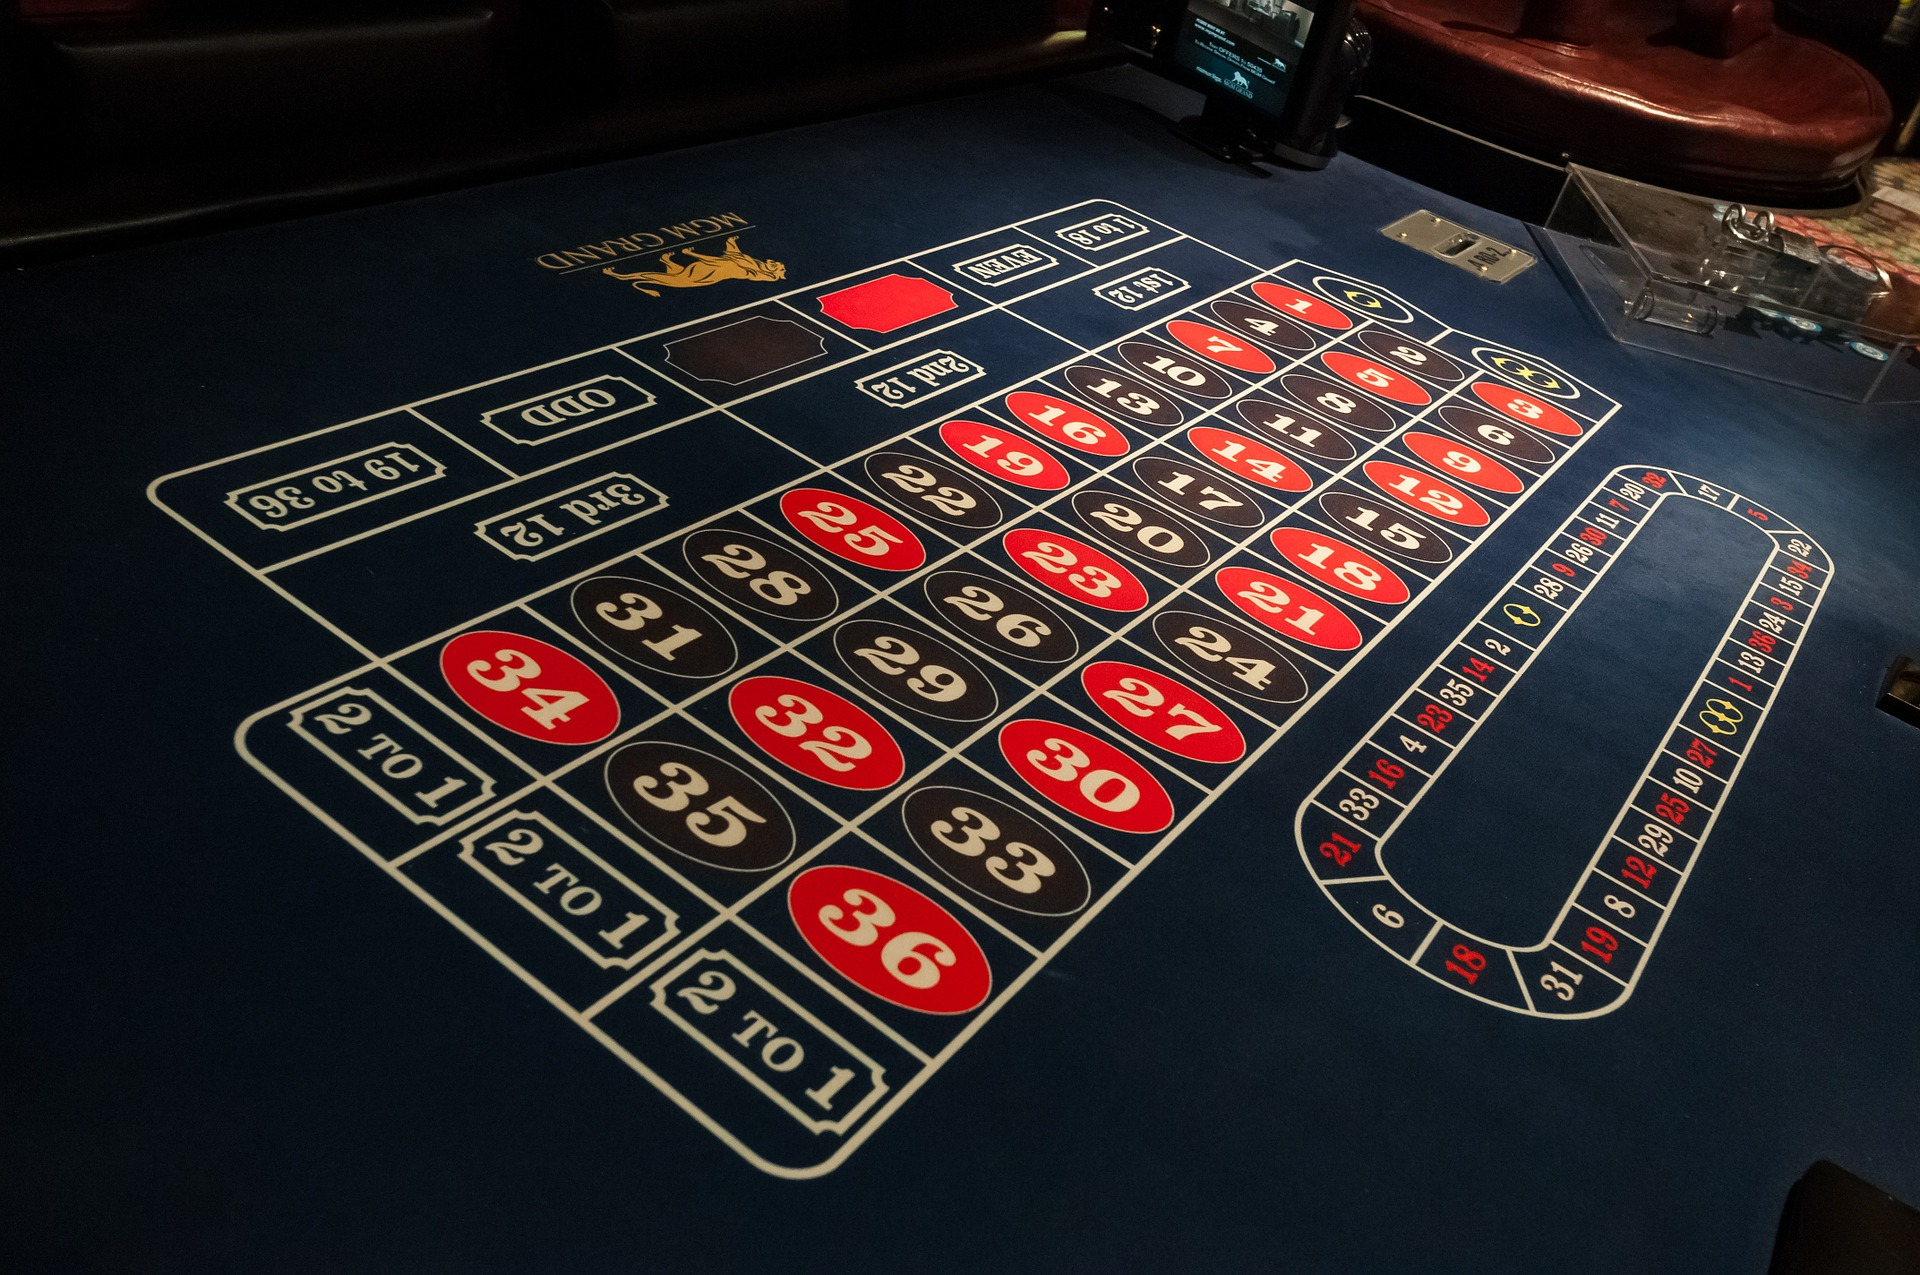 Roulette gaming table at MGM Grand Casino in Las Vegas